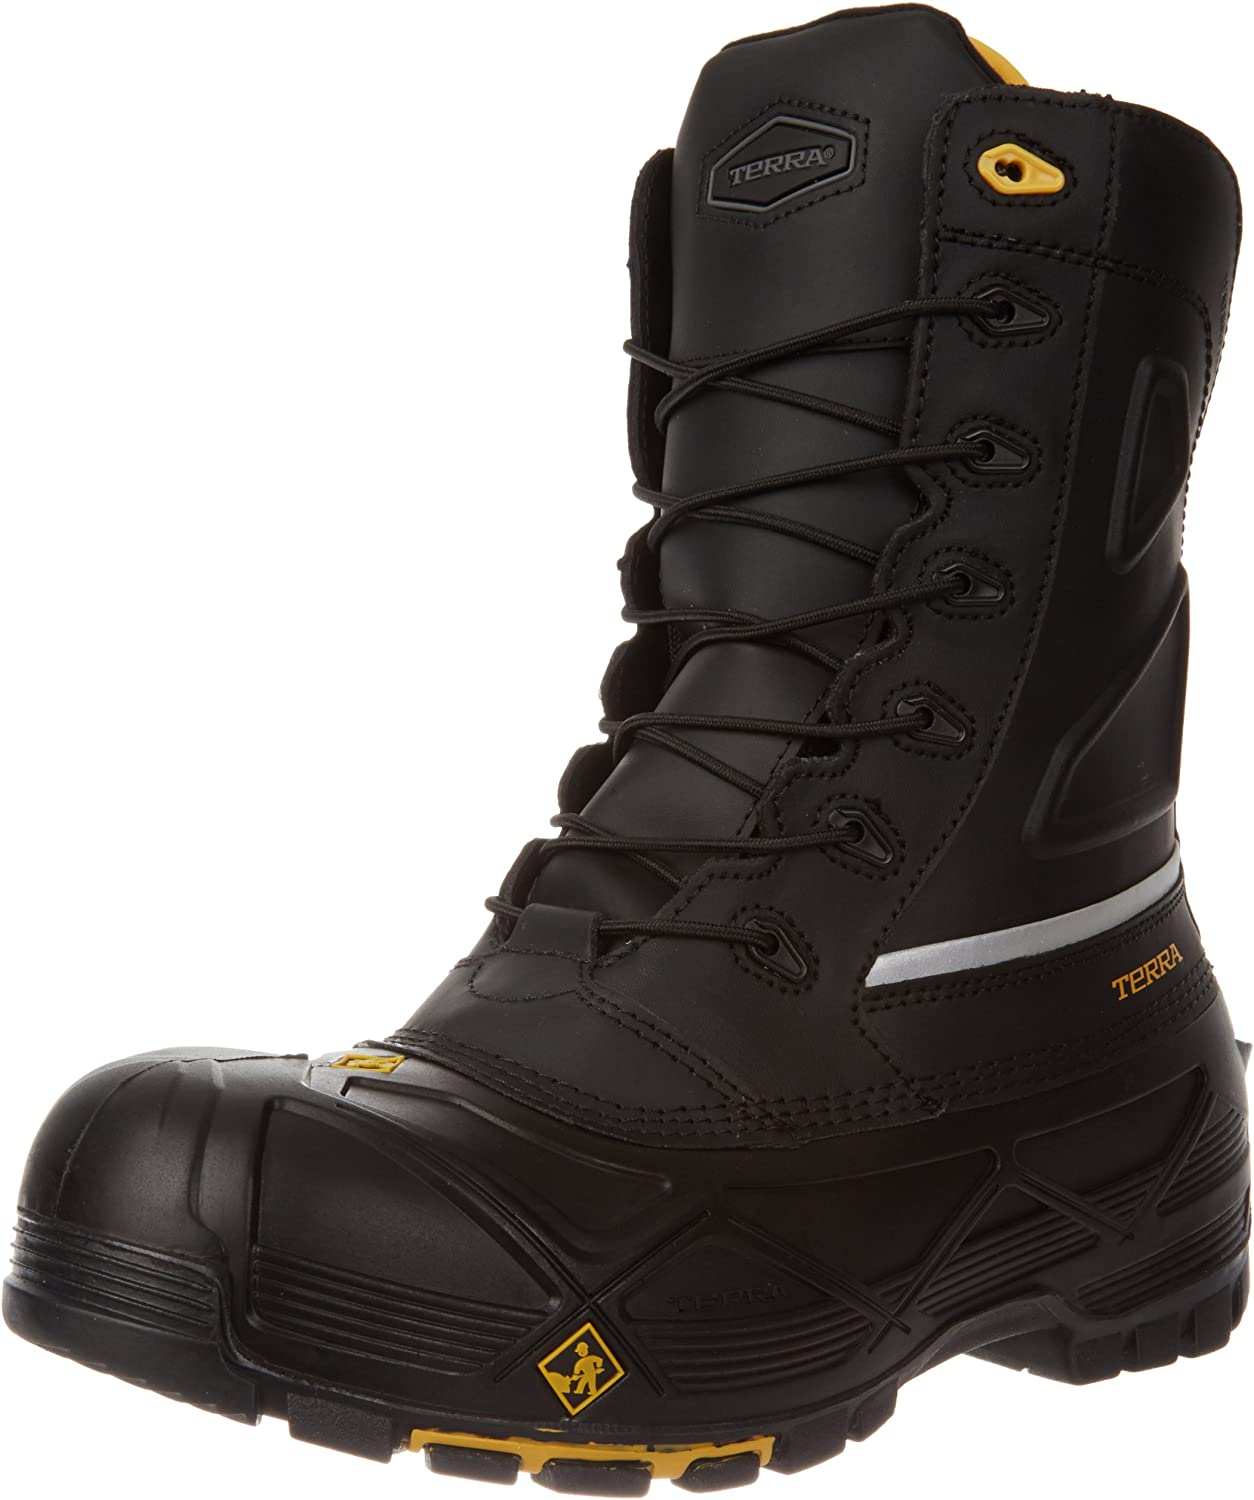 Terra Mens Crossbow Industrial & Construction shoes